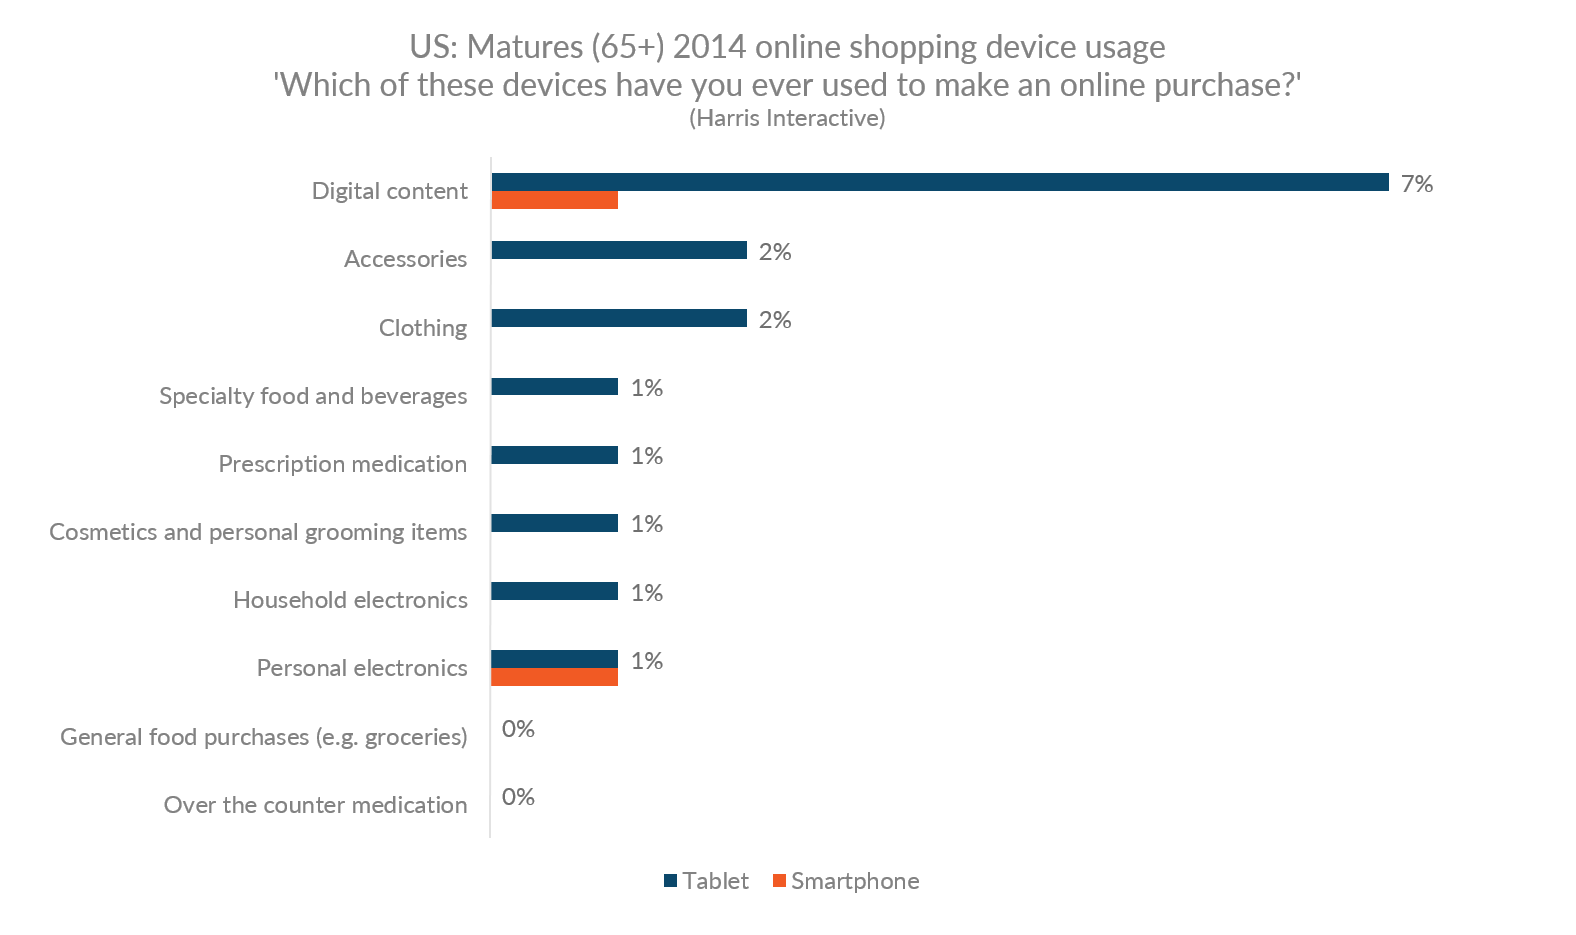 Graph showing the rate for online purchases by device in product categories in the US for people 65 and older